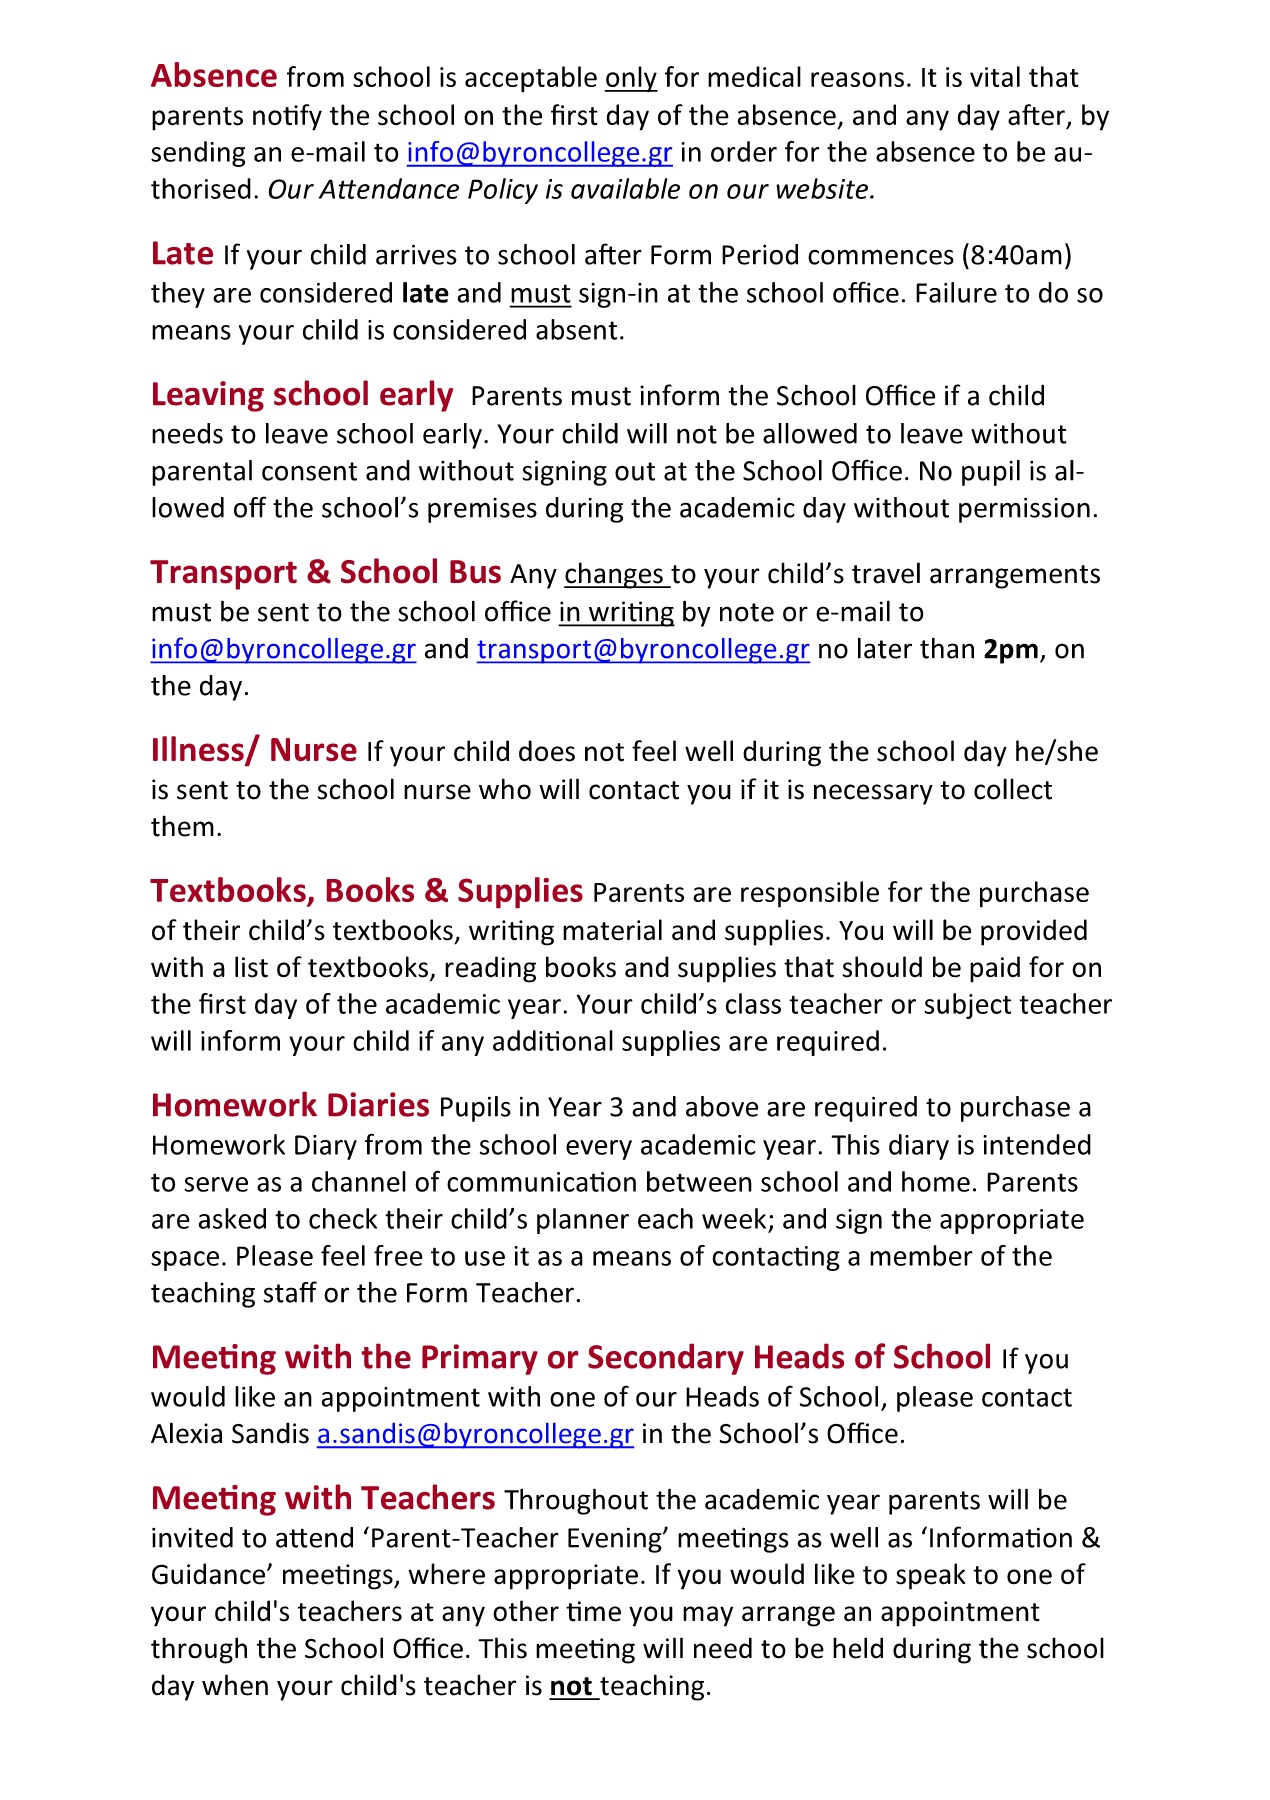 2017-2018 ESSENTIAL SCHOOL INFORMATION Pages 1 - 4 - Text Version